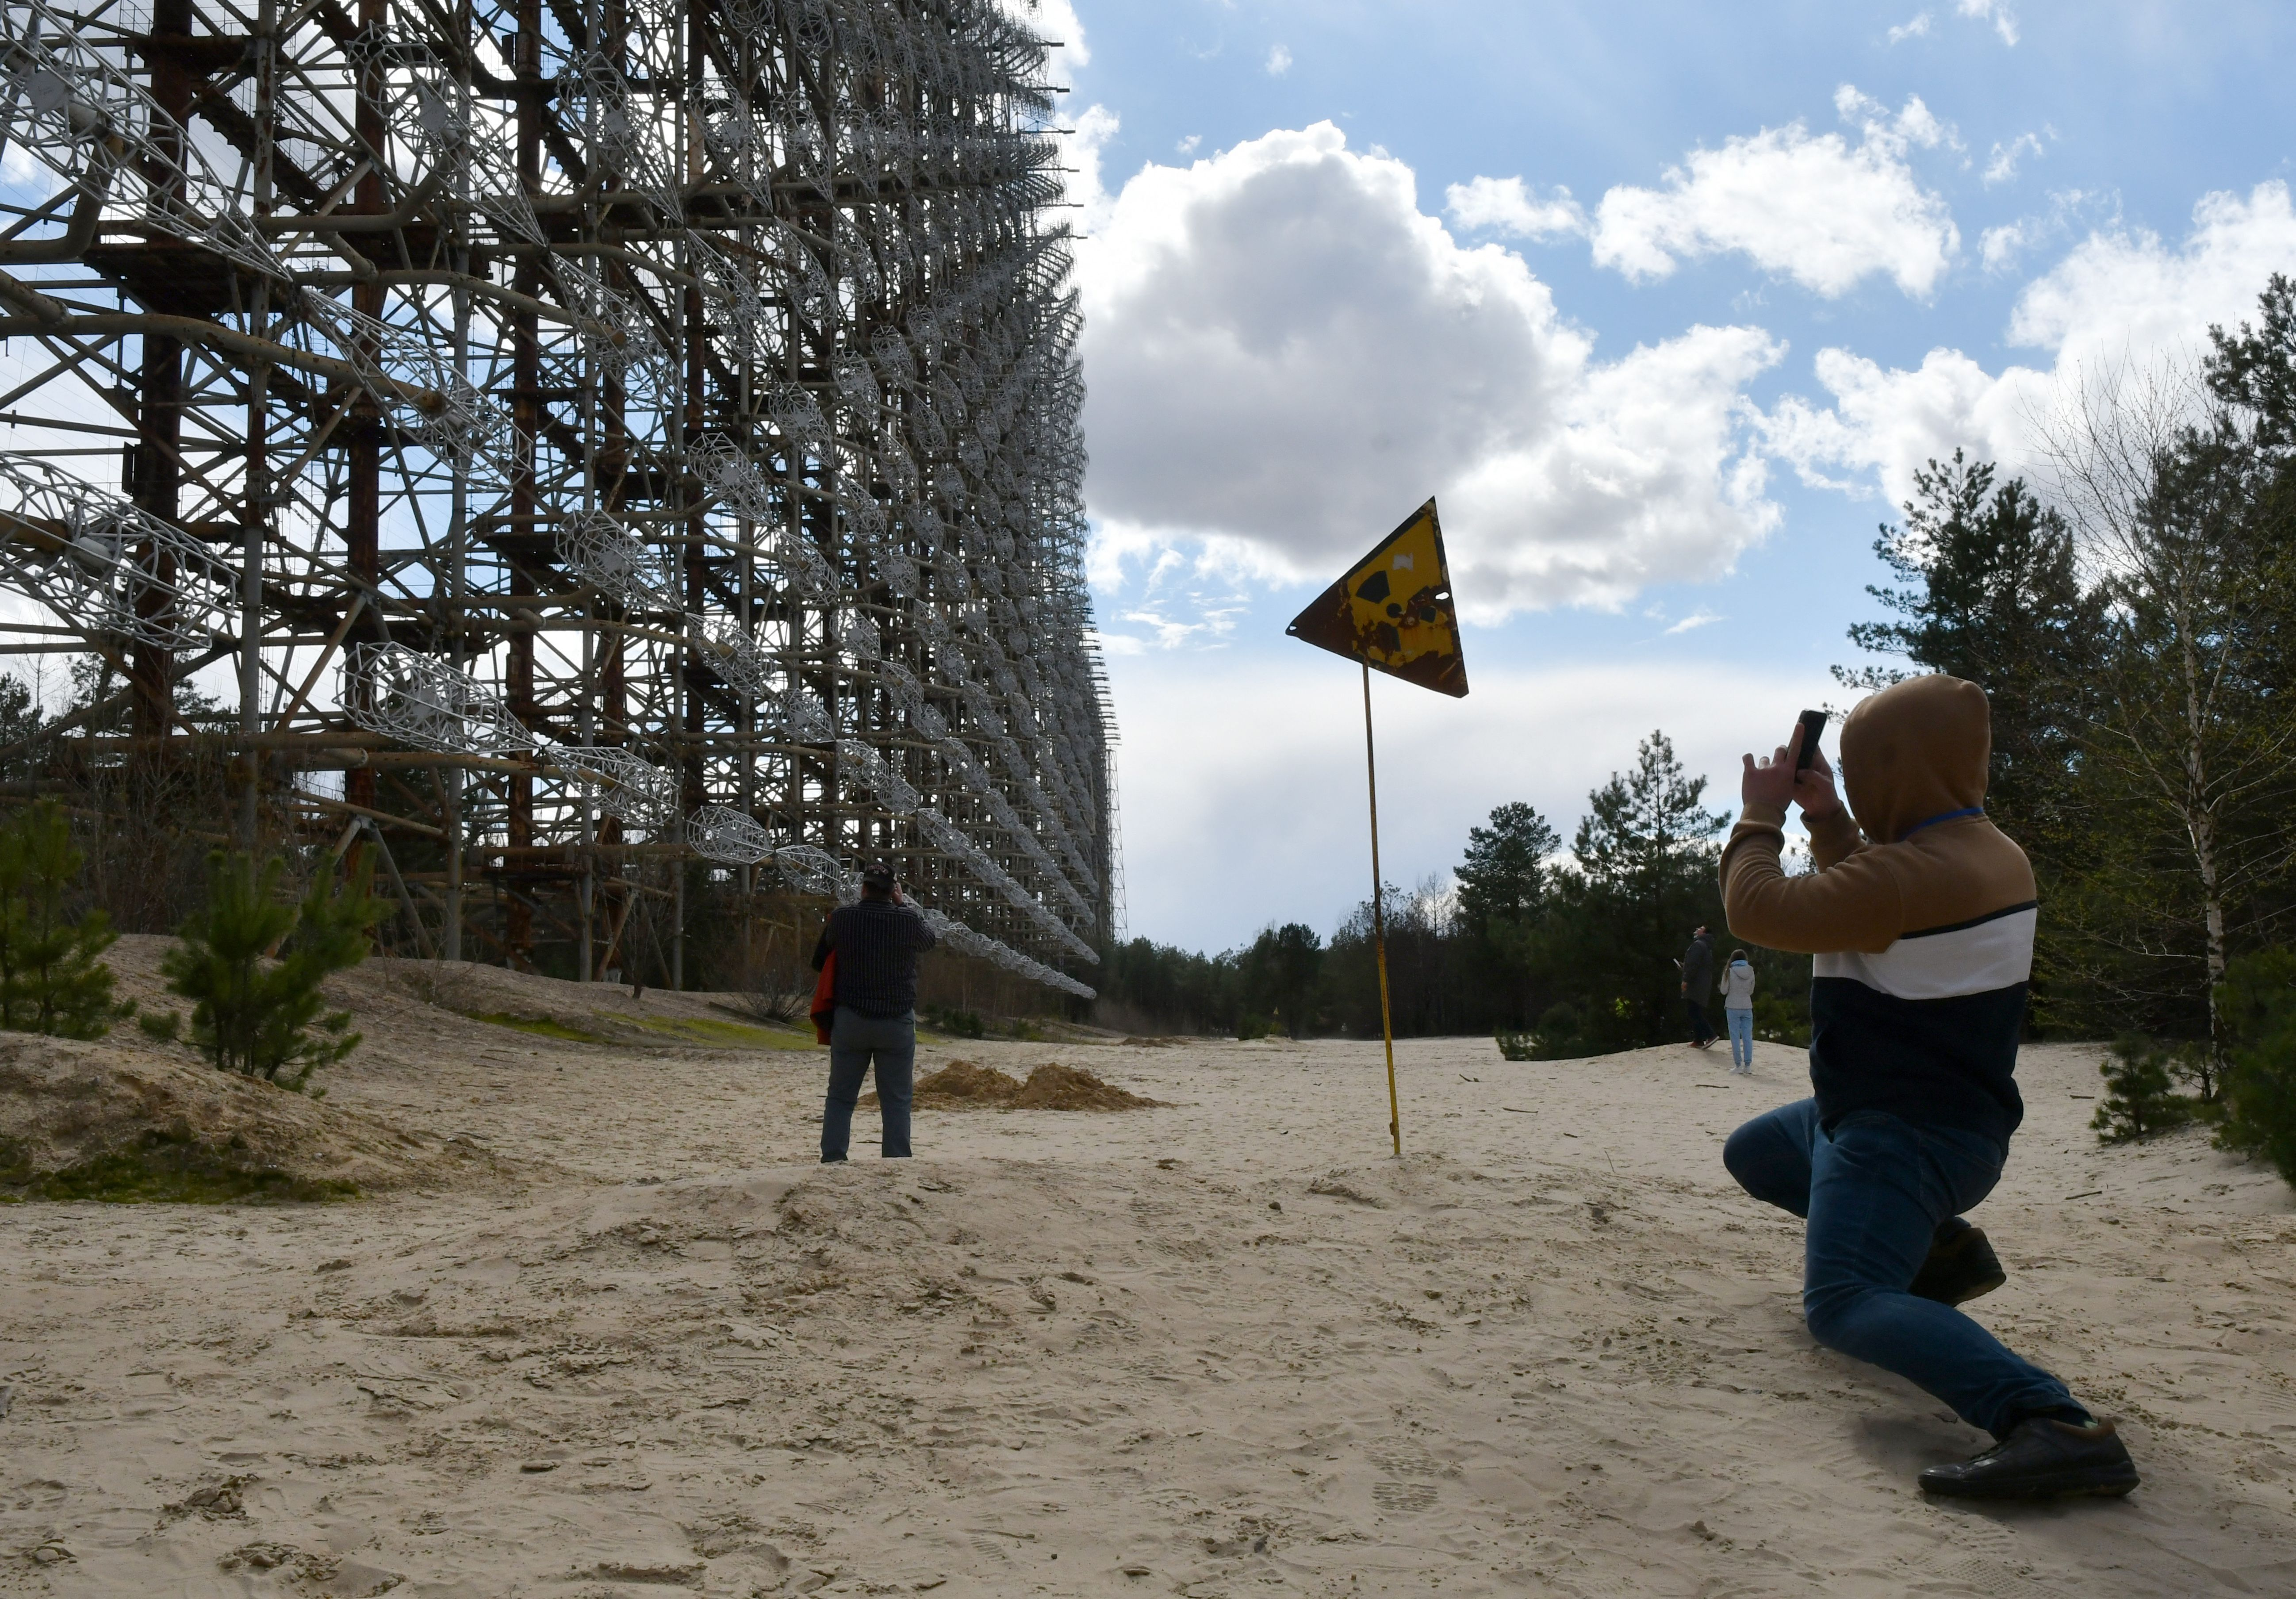 A Missile Radar in the Chernobyl Exclusion Zone Is Now a Protected Heritage Site